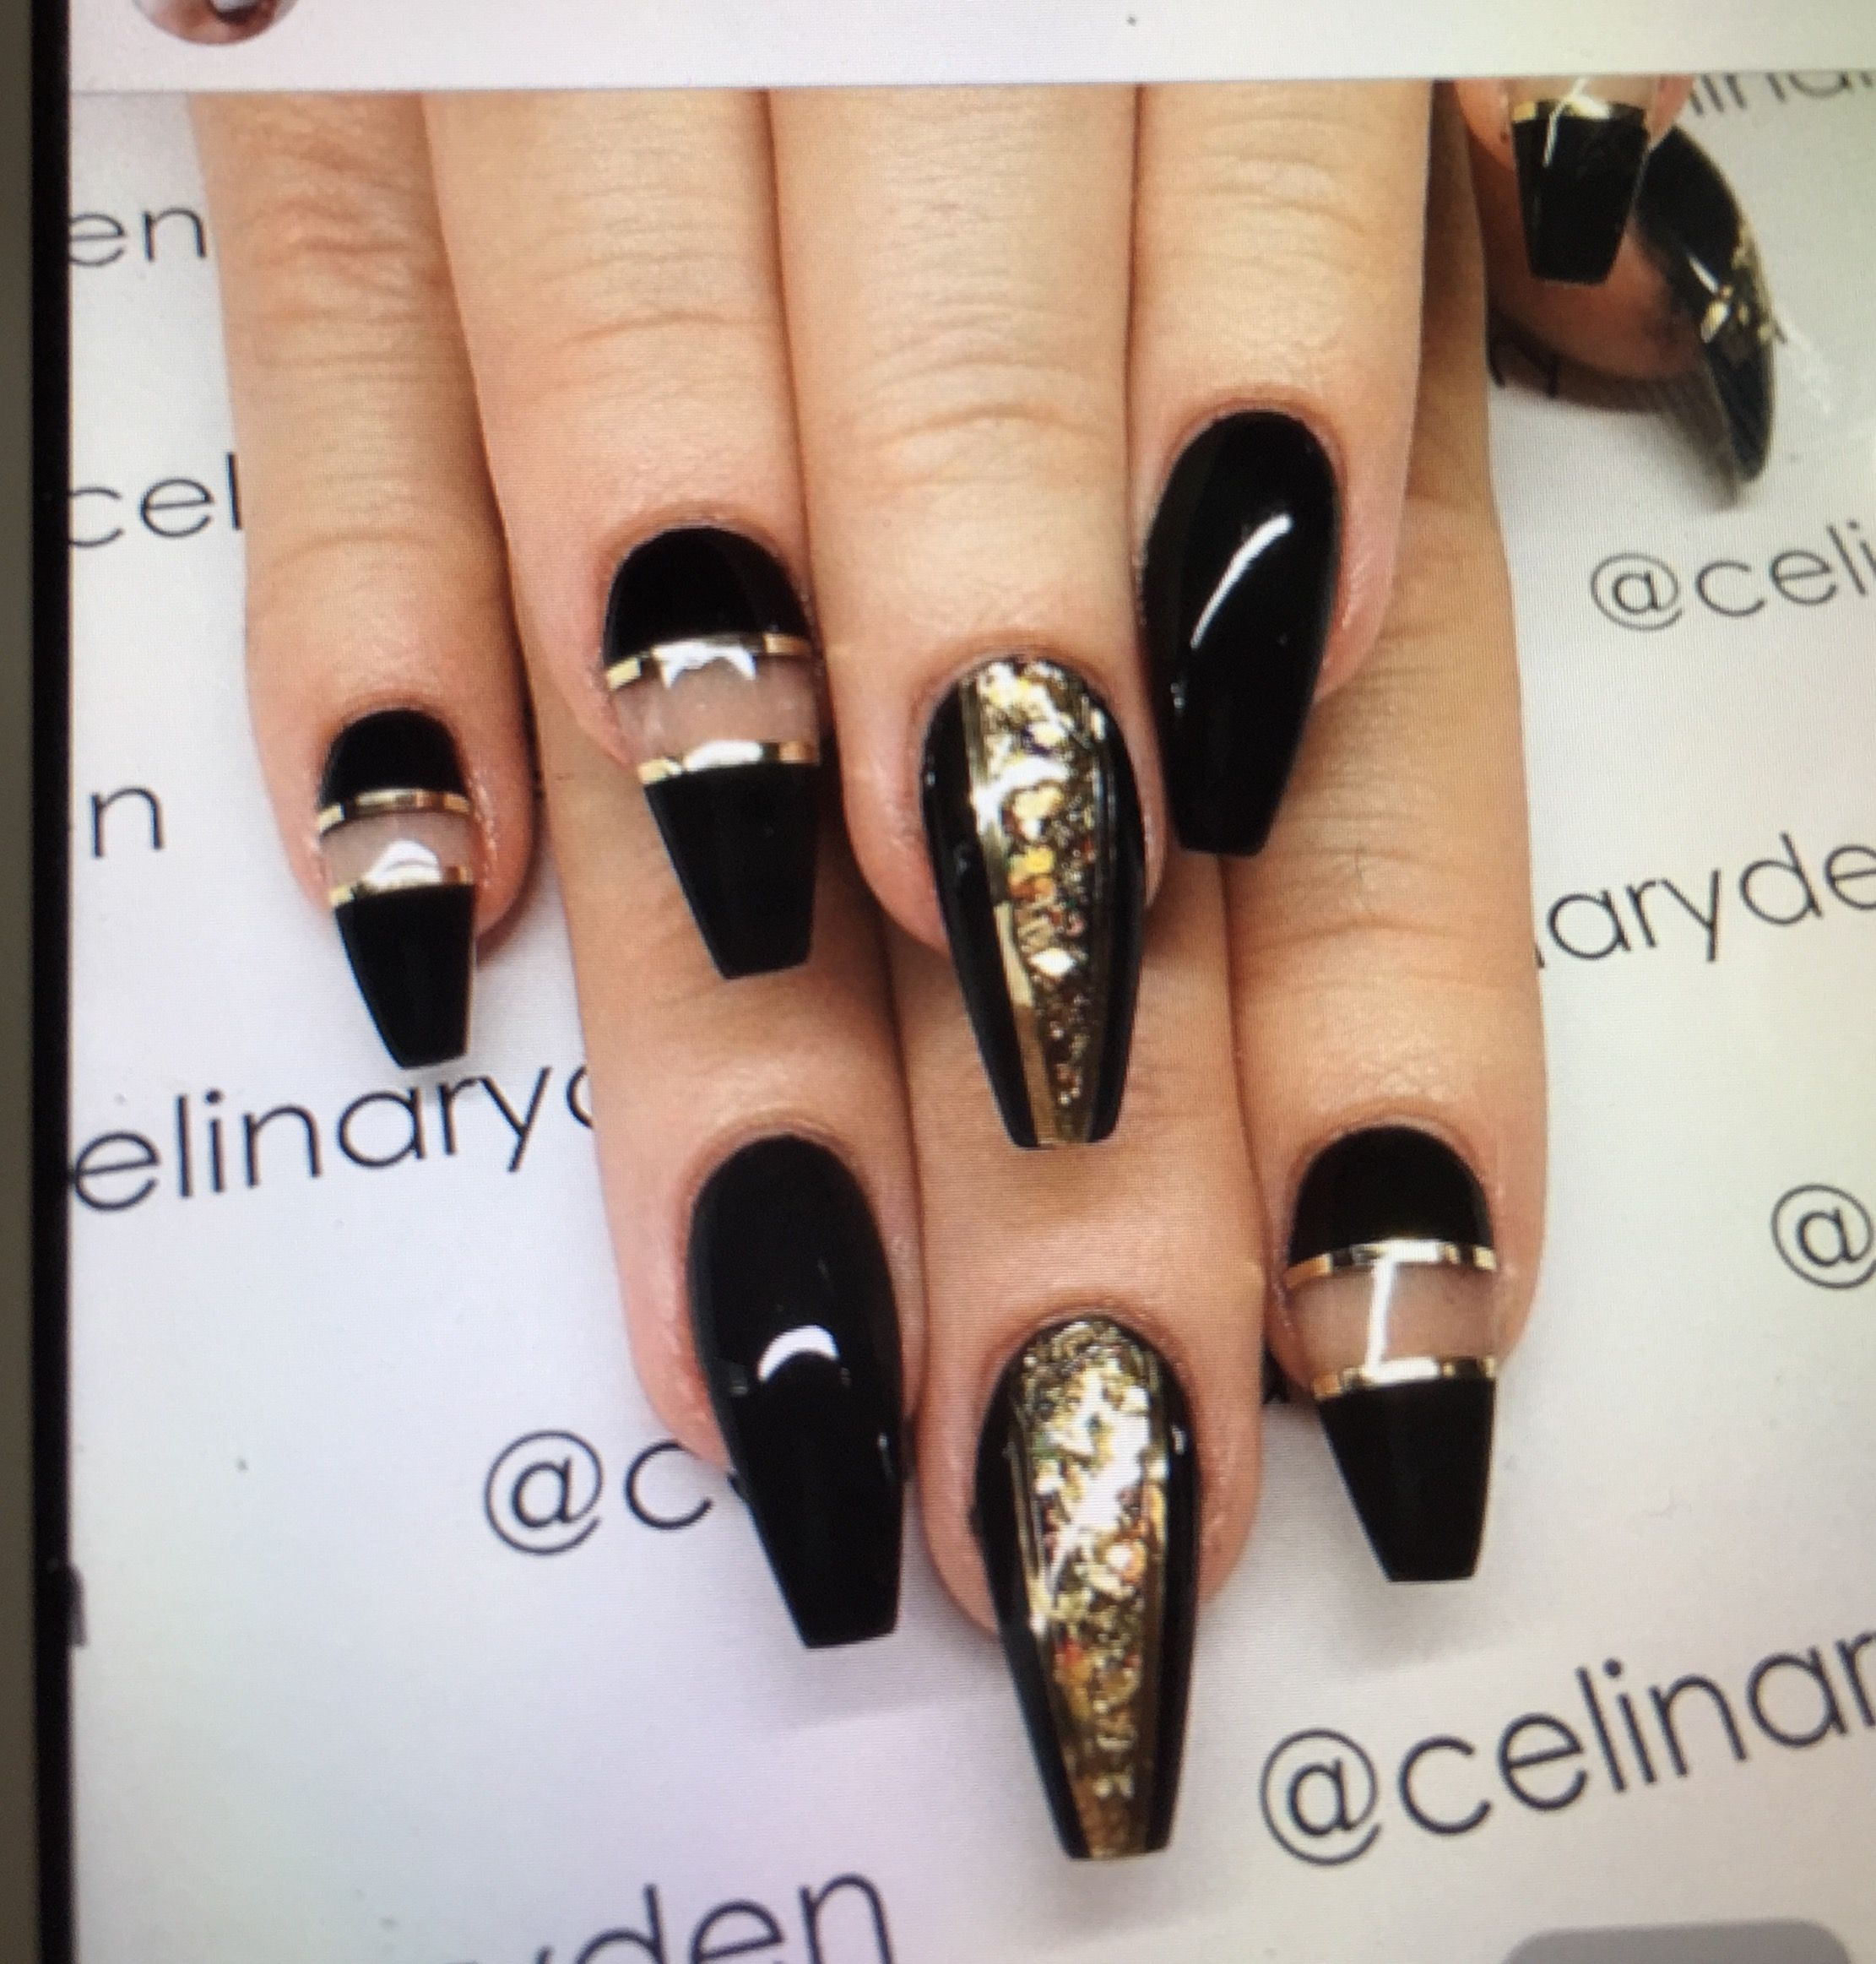 For more follow @crxwnk9555✓ | Polishd | Pinterest | Nail nail ...